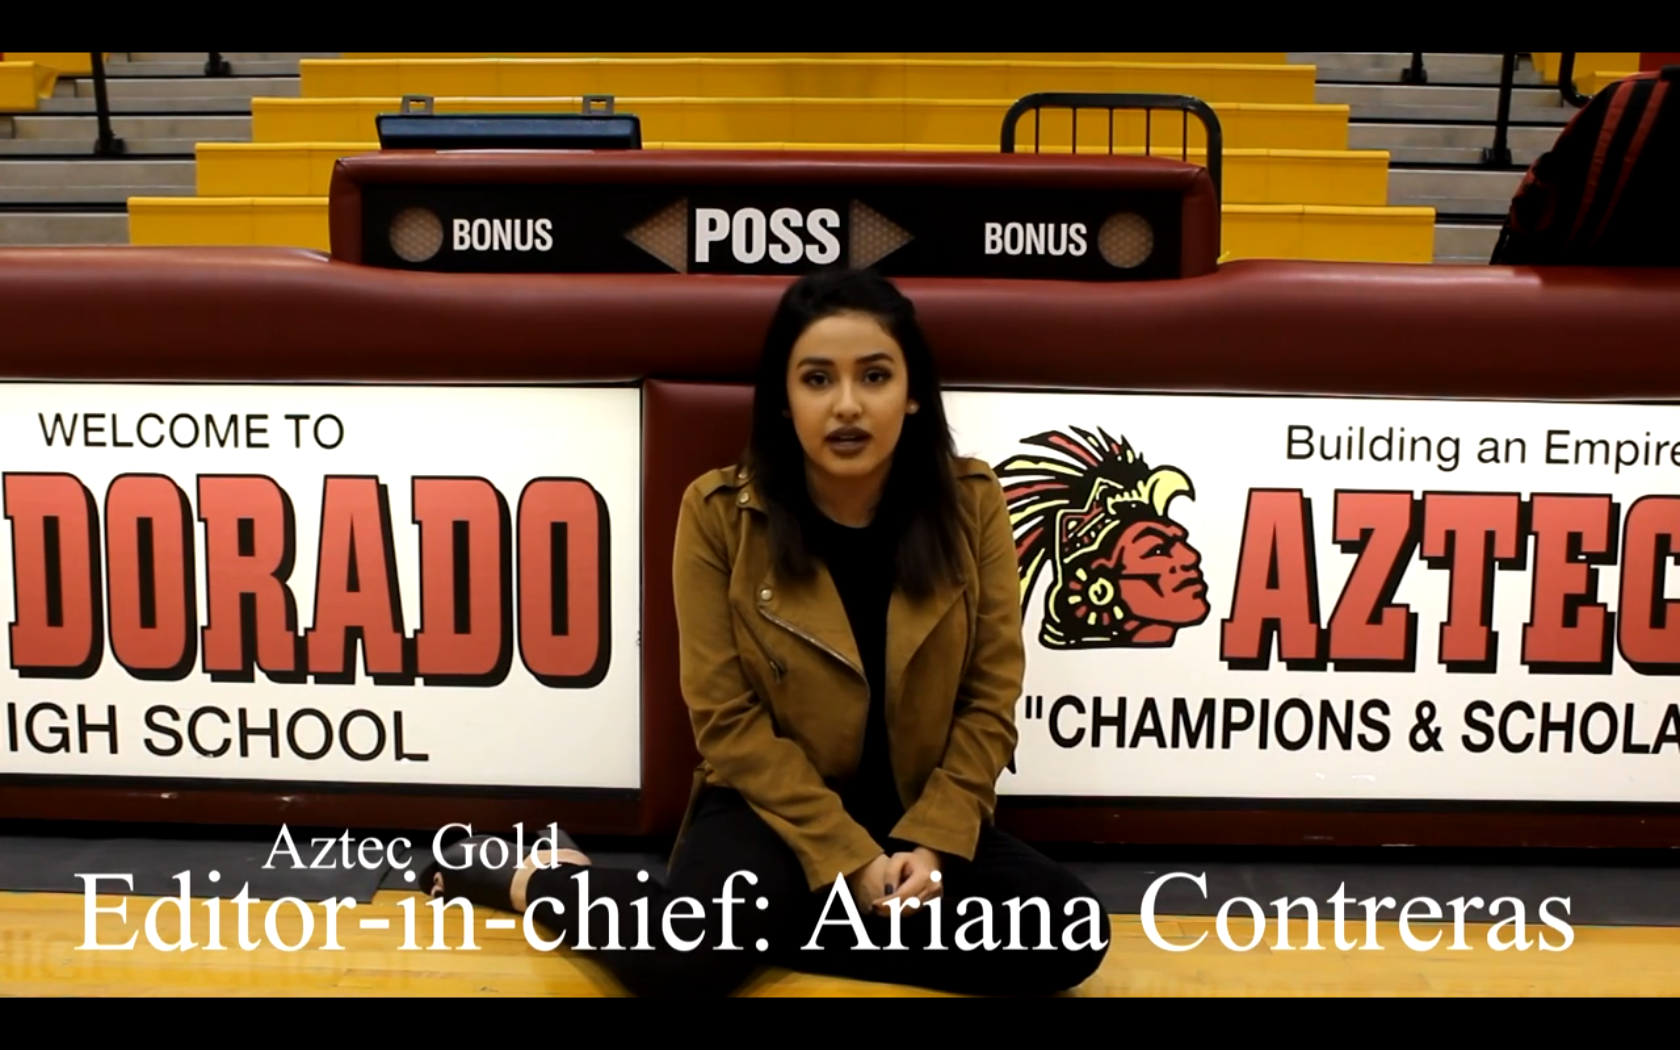 Aztec Gold and Yearbook Promotional Video